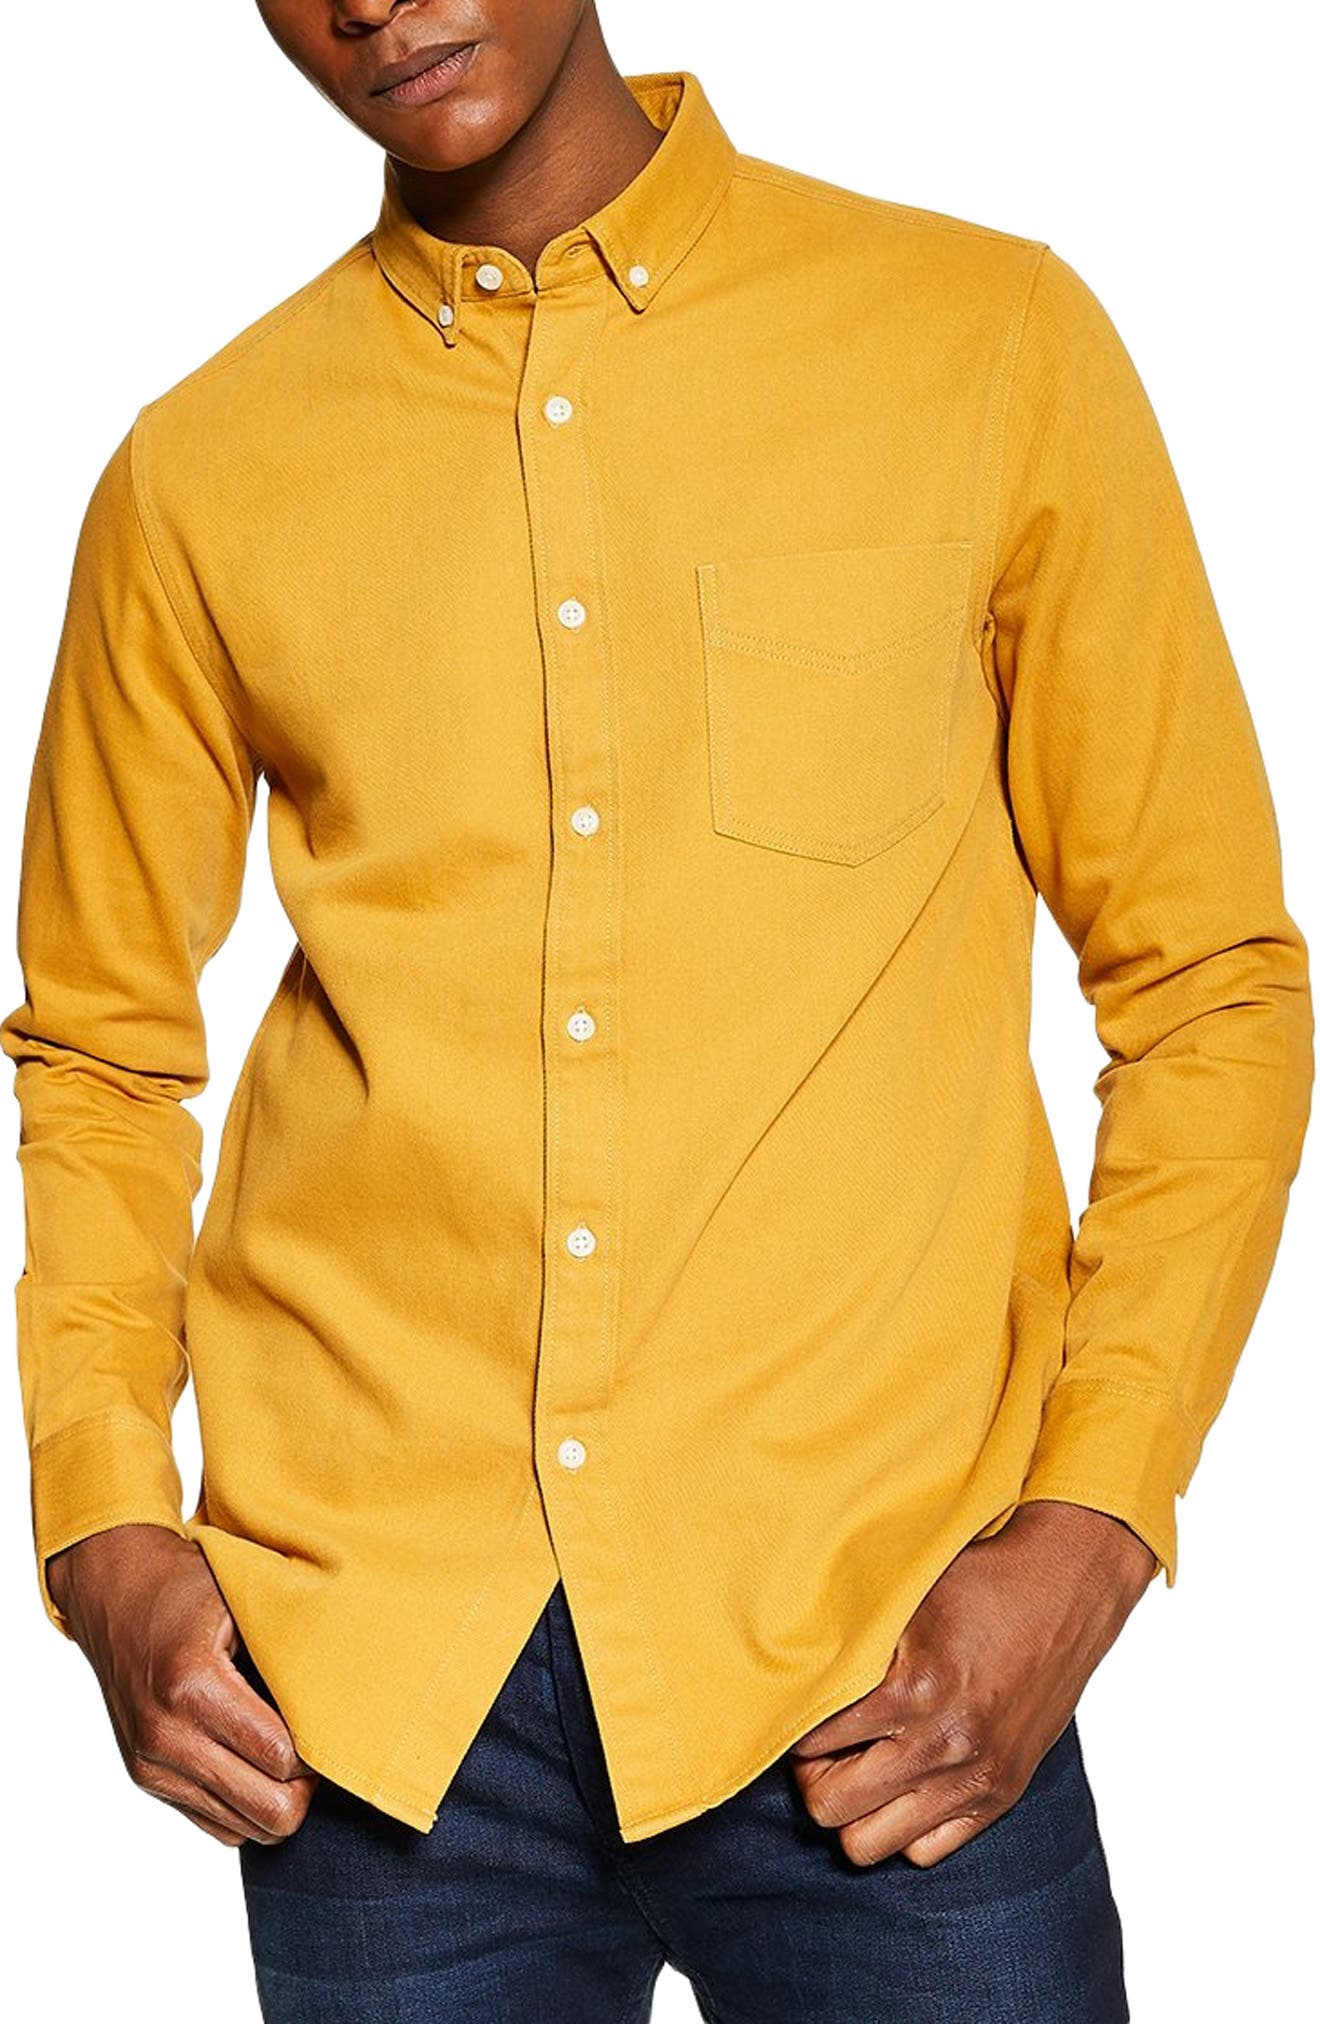 Slim Fit Twill Shirt,                             Main thumbnail 1, color,                             YELLOW